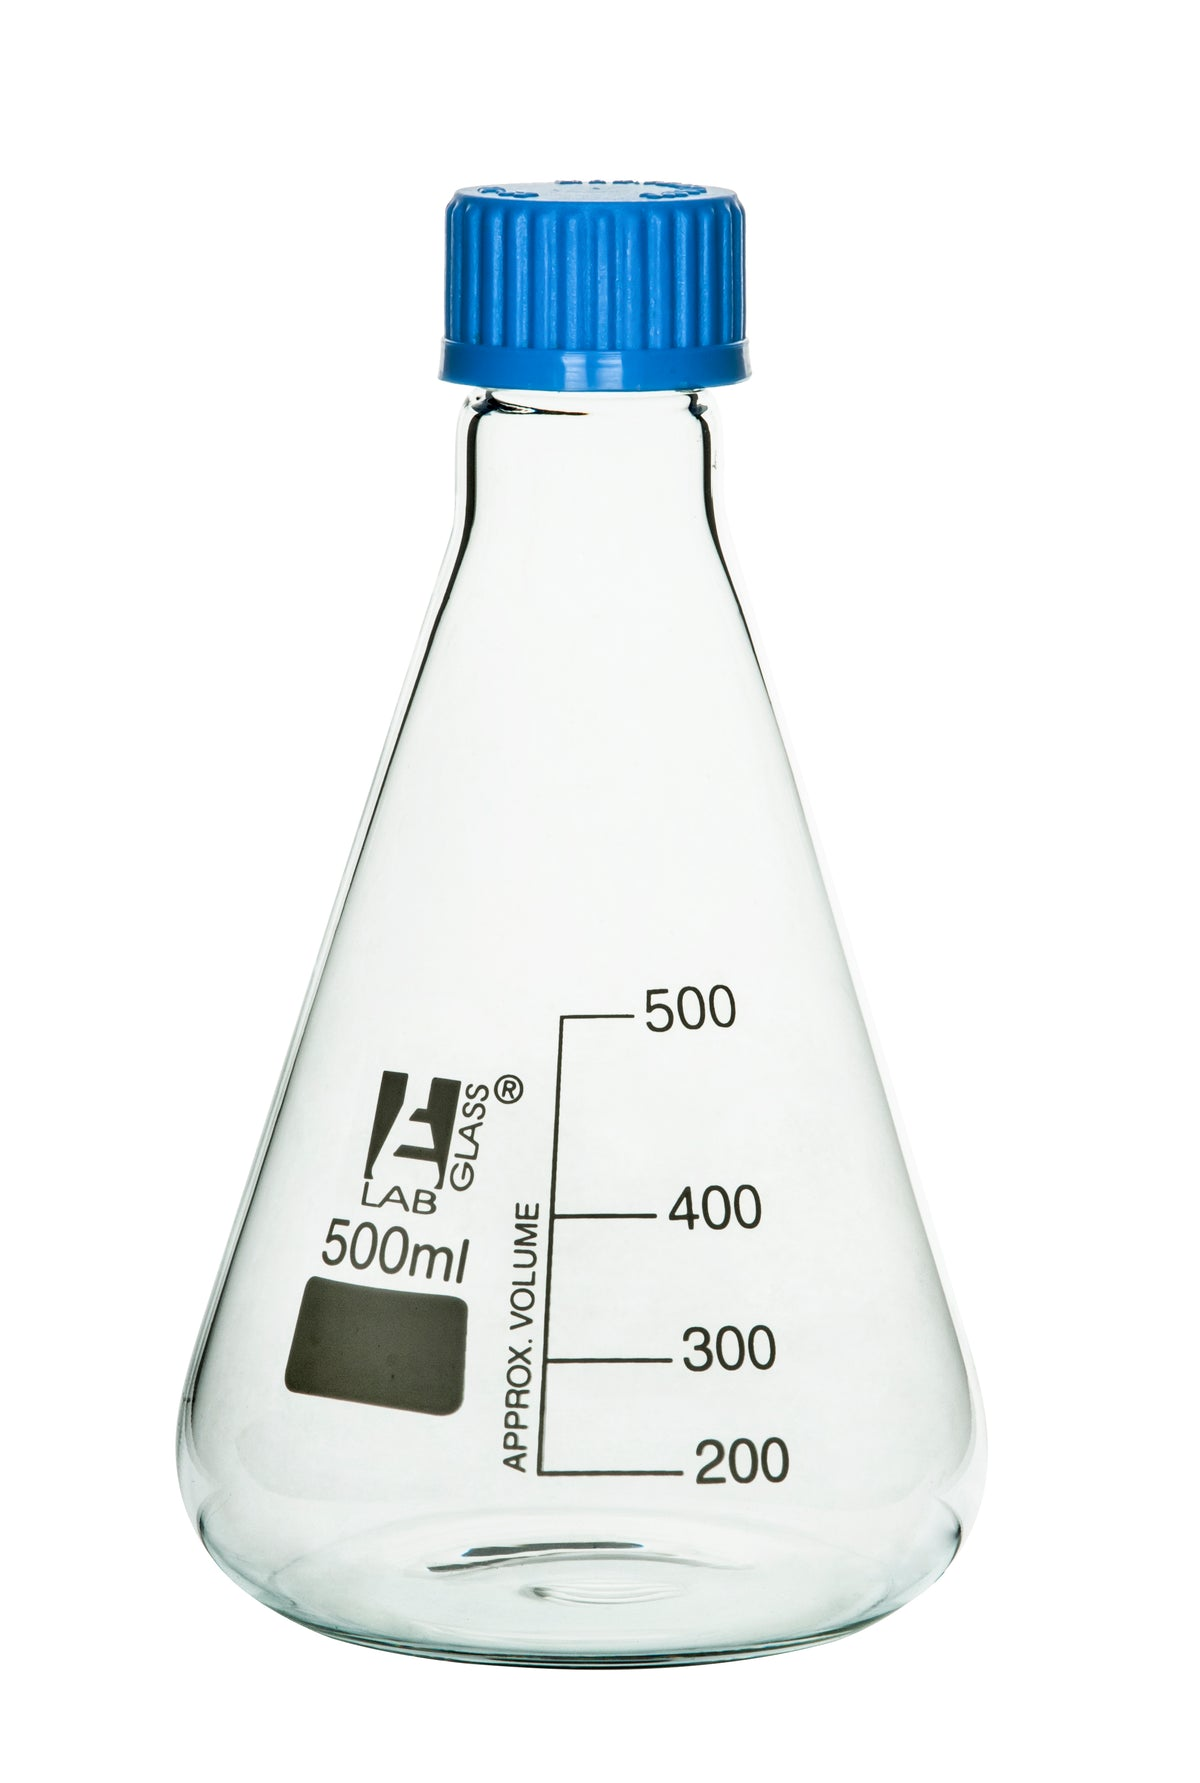 Narrow Neck Eisco Labs Interchangeable 500ml Borosilicate Glass 24//29 Joint Conical Shape Erlenmeyer Flask